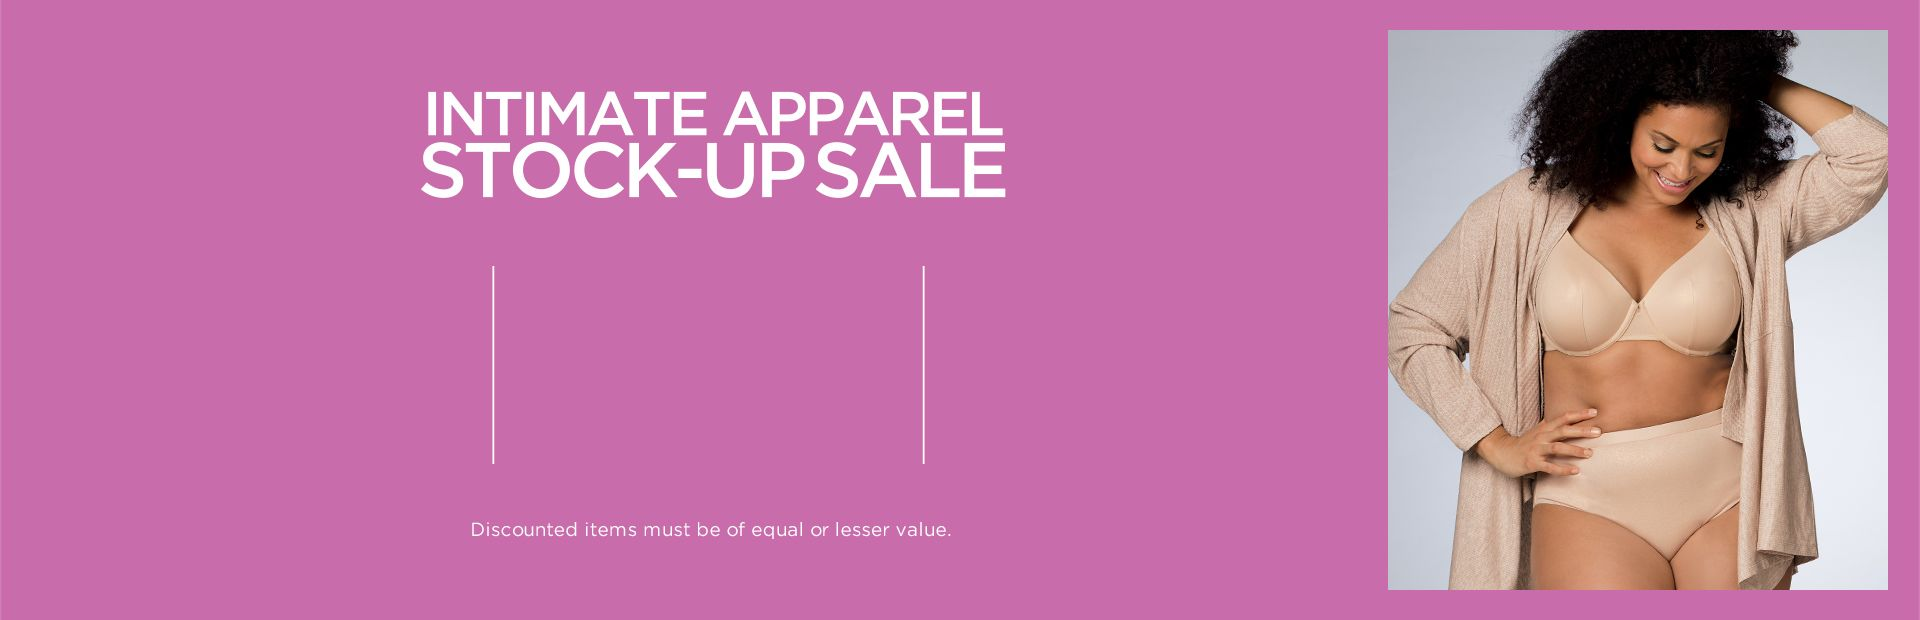 Shop Intimates Stock Up Sale at Catherines Plus Sizes